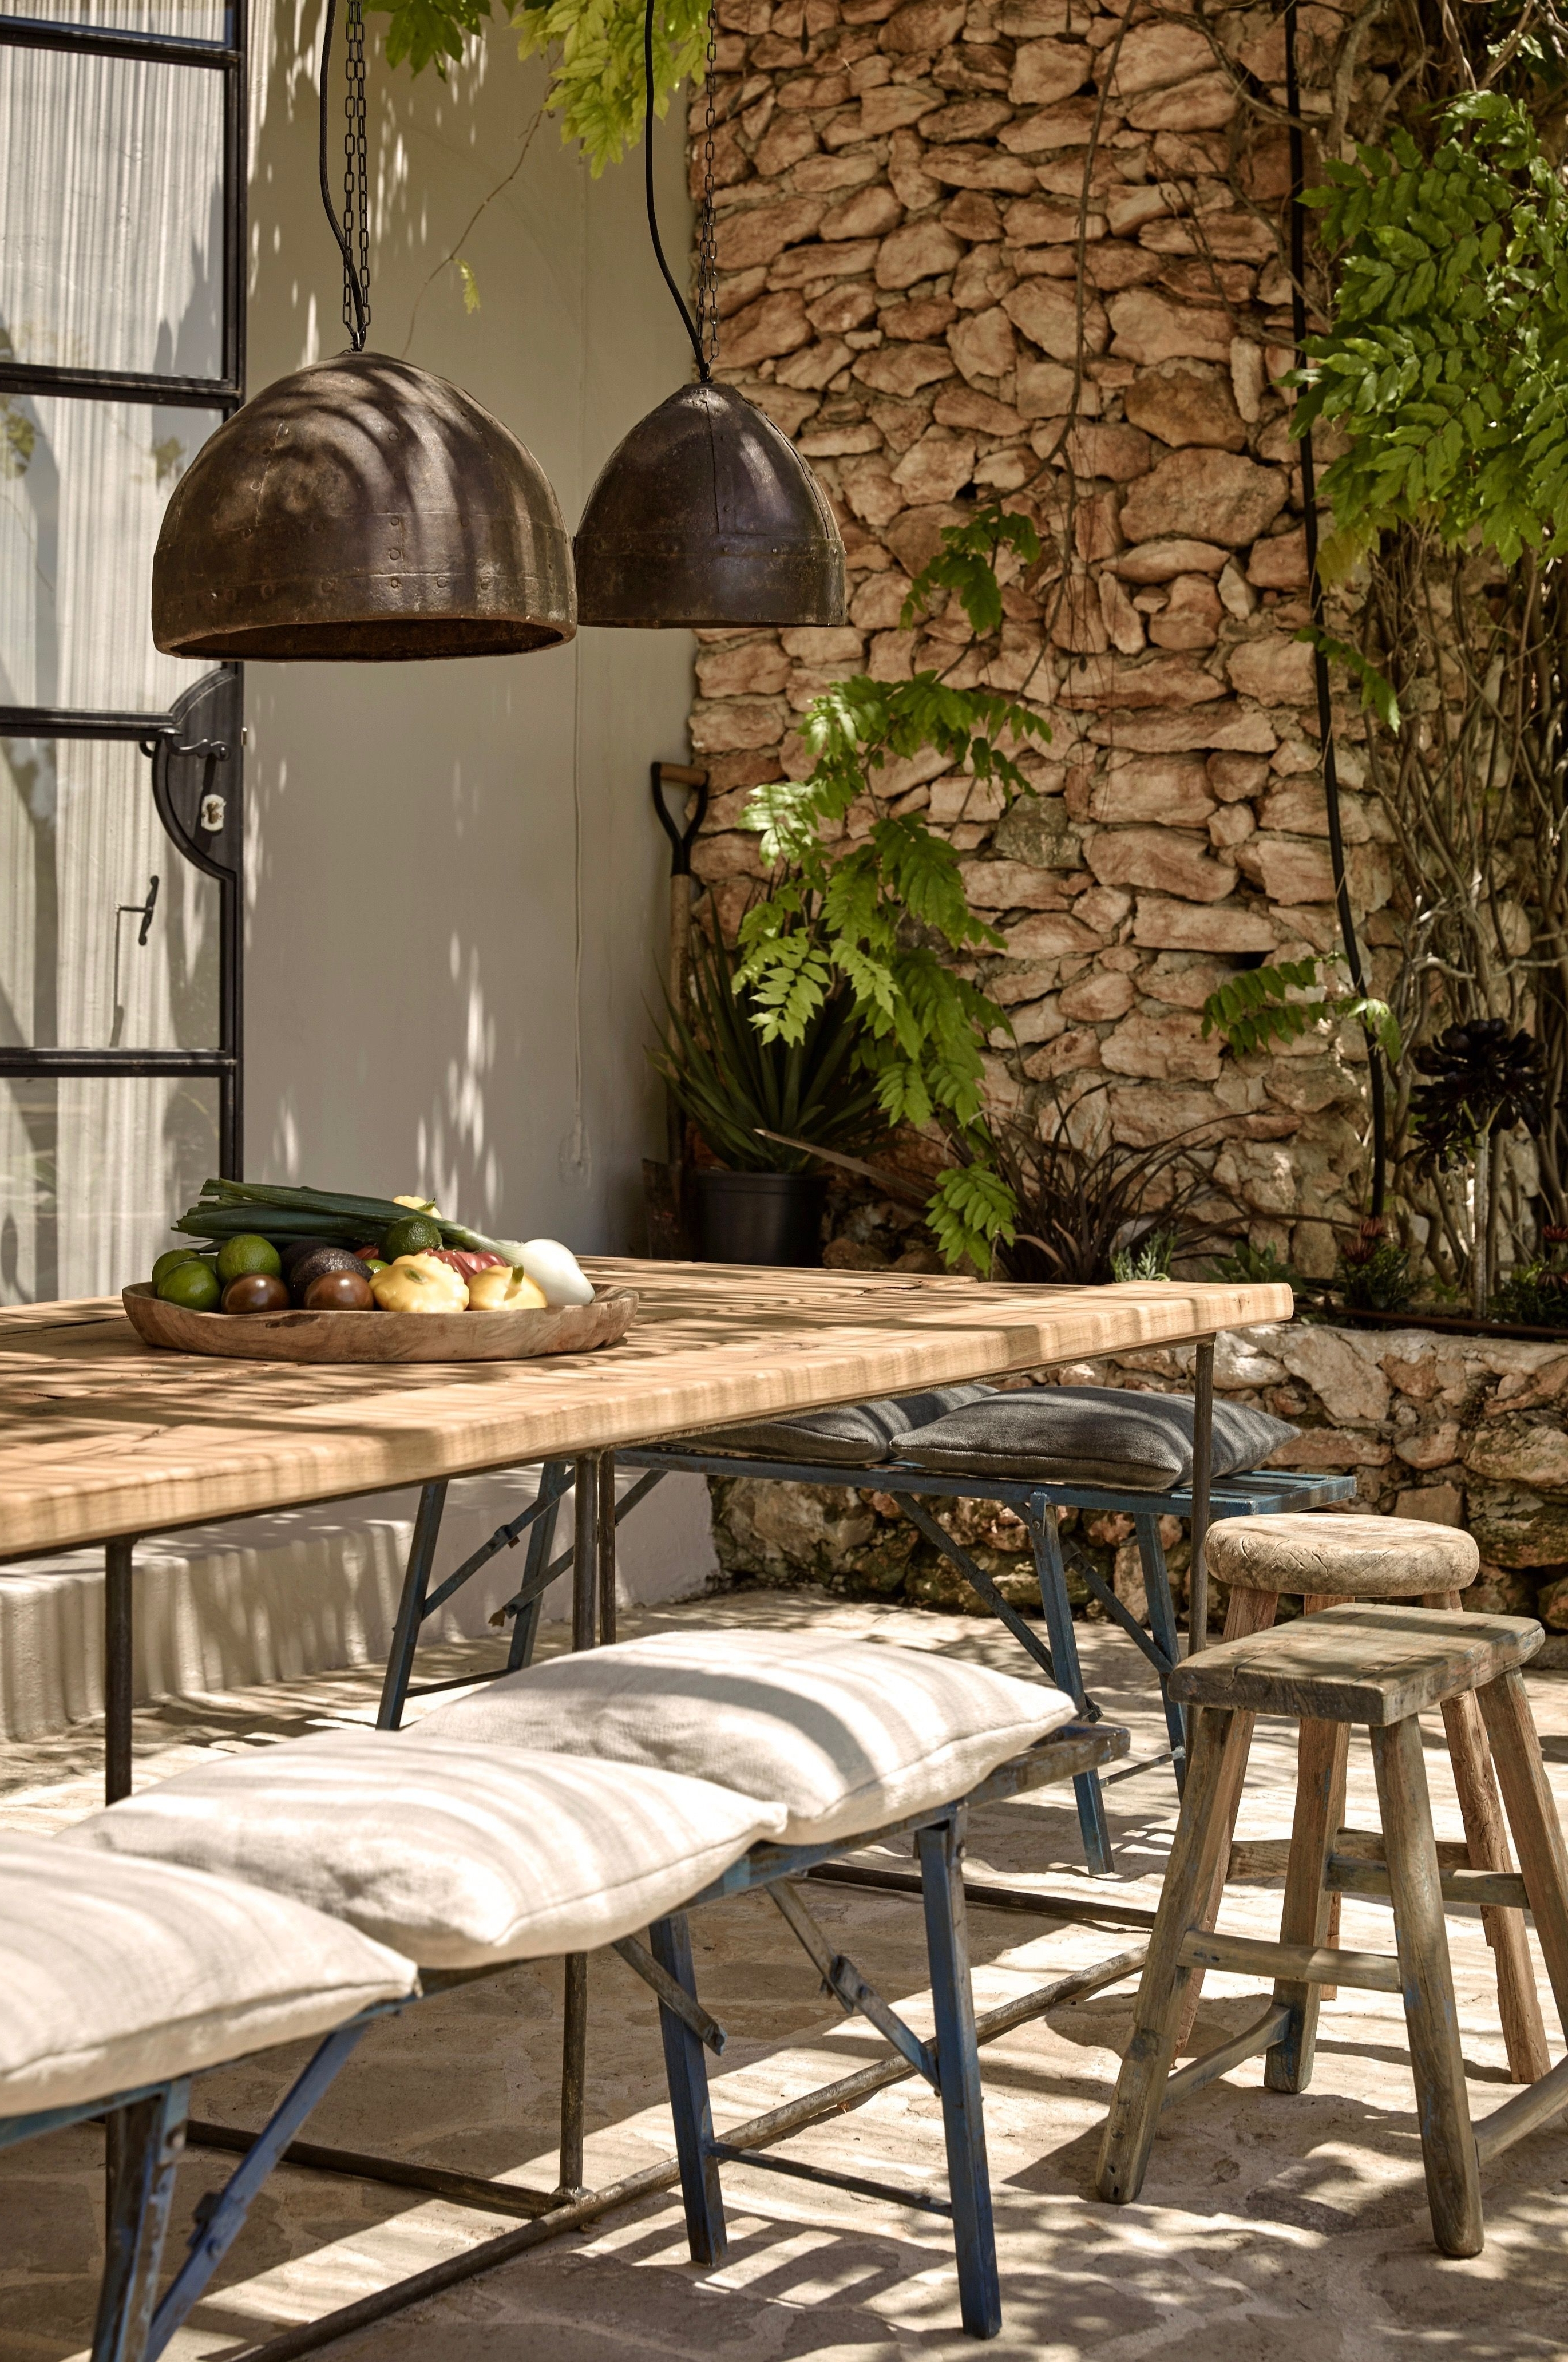 Hotel La Granja Ibiza Outdoor Dining Lanterns Stone Wall Gardenista In Most Up To Date Outdoor Dining Lanterns (Gallery 6 of 20)